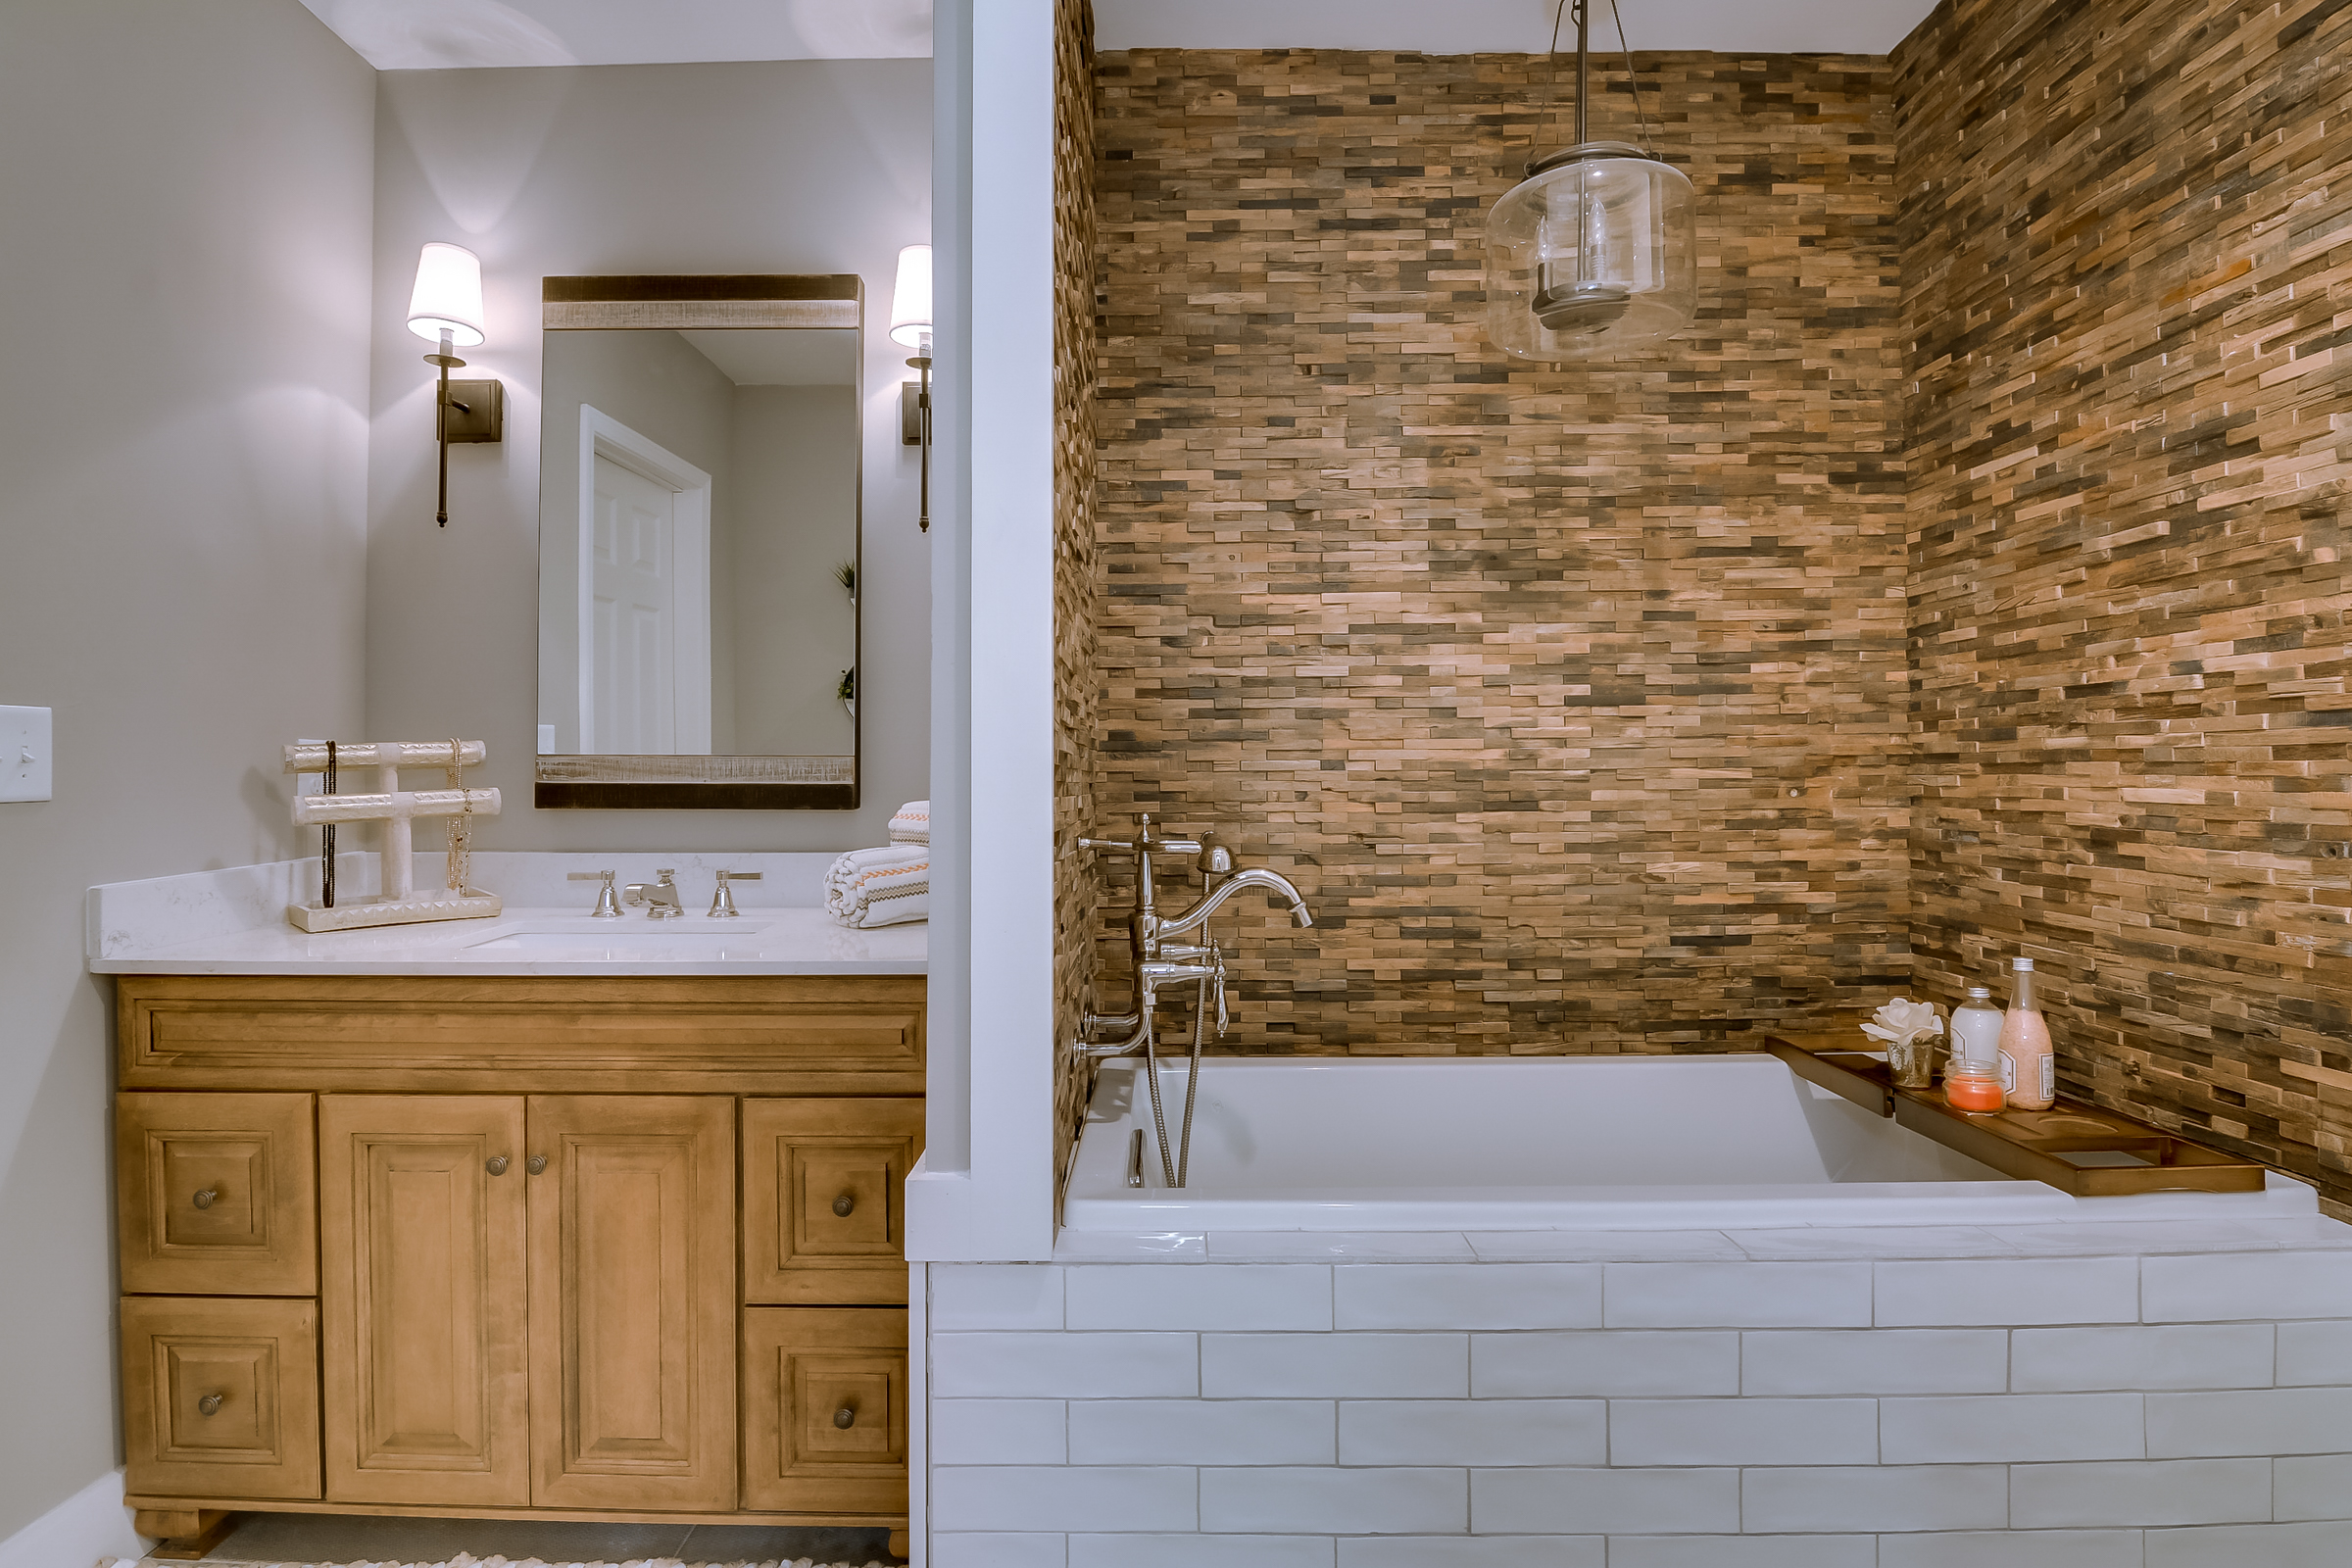 Lighting: Savoy House, Tub and Faucet: Kohler